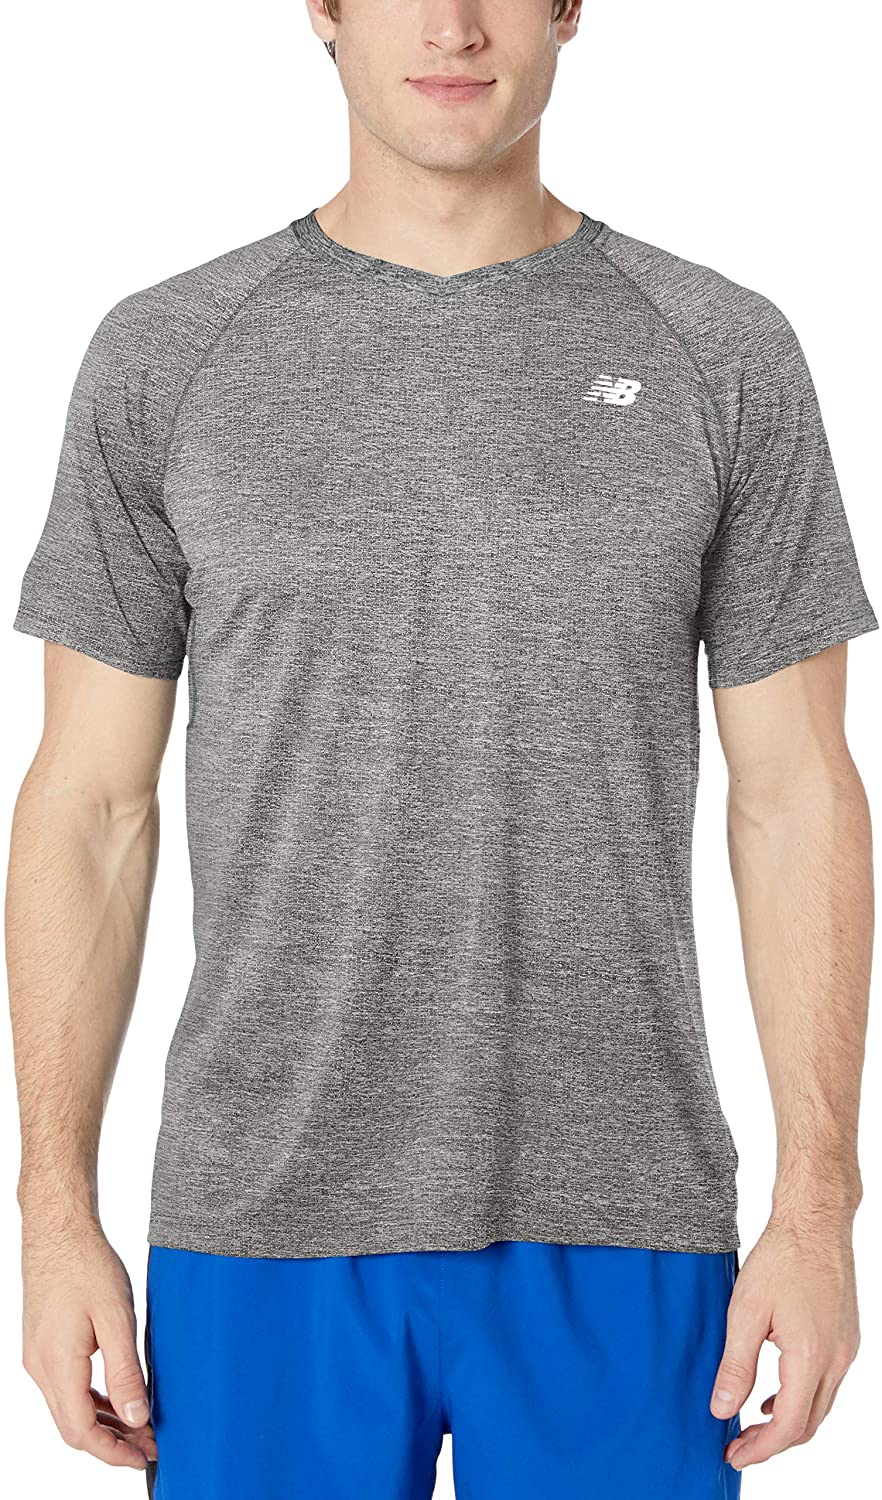 New Balance Mens Mesh NB Ice 2.0 Short Sleeve